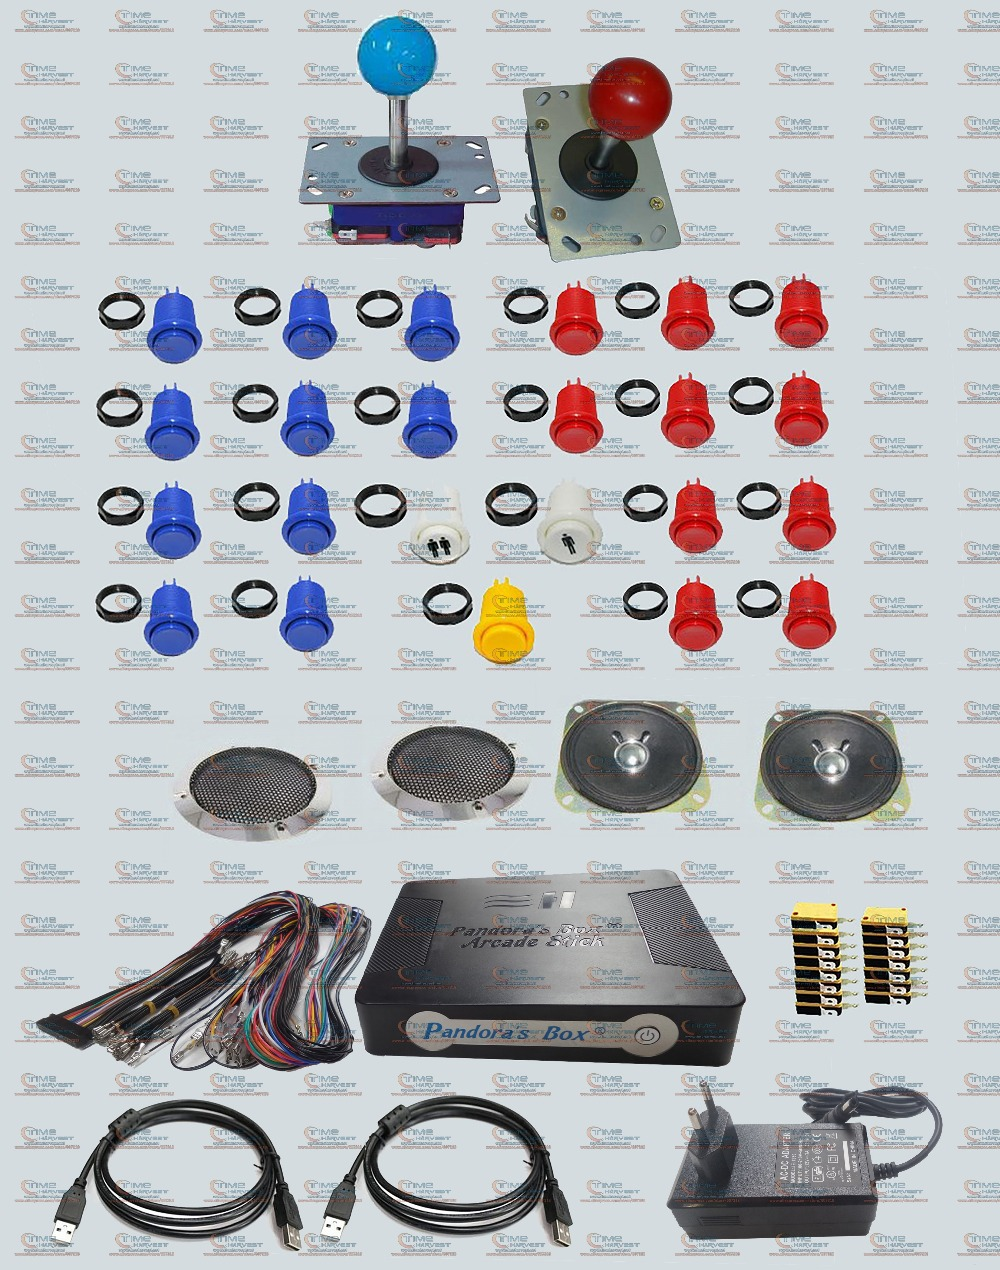 Arcade parts Bundles kit With Pandora Box 4S Arcade Stick game board Long shaft Joystick American arcade parts bundles kit with pandora box 4s arcade stick game  at bakdesigns.co